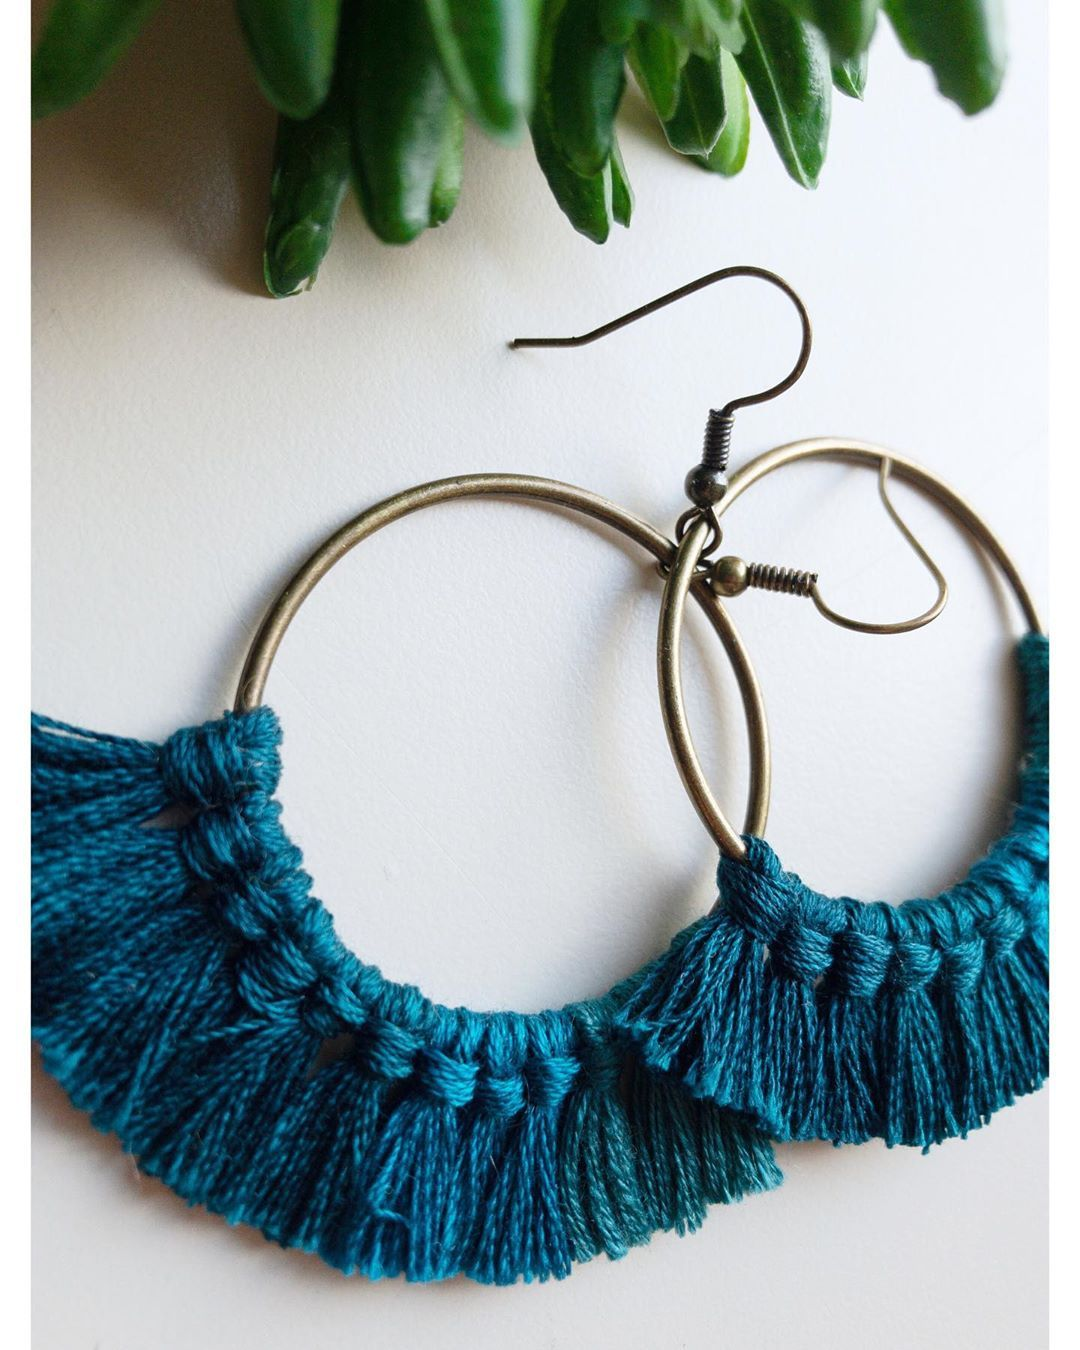 🌊O M B R È🌊 #hoopearrings #fiberearrings #oneofakind . . For shopping follow the link in bio.🔝 #handmade#macrame#polymerclay#craft#gift#art#accessories#special#craftshop#etsyshop